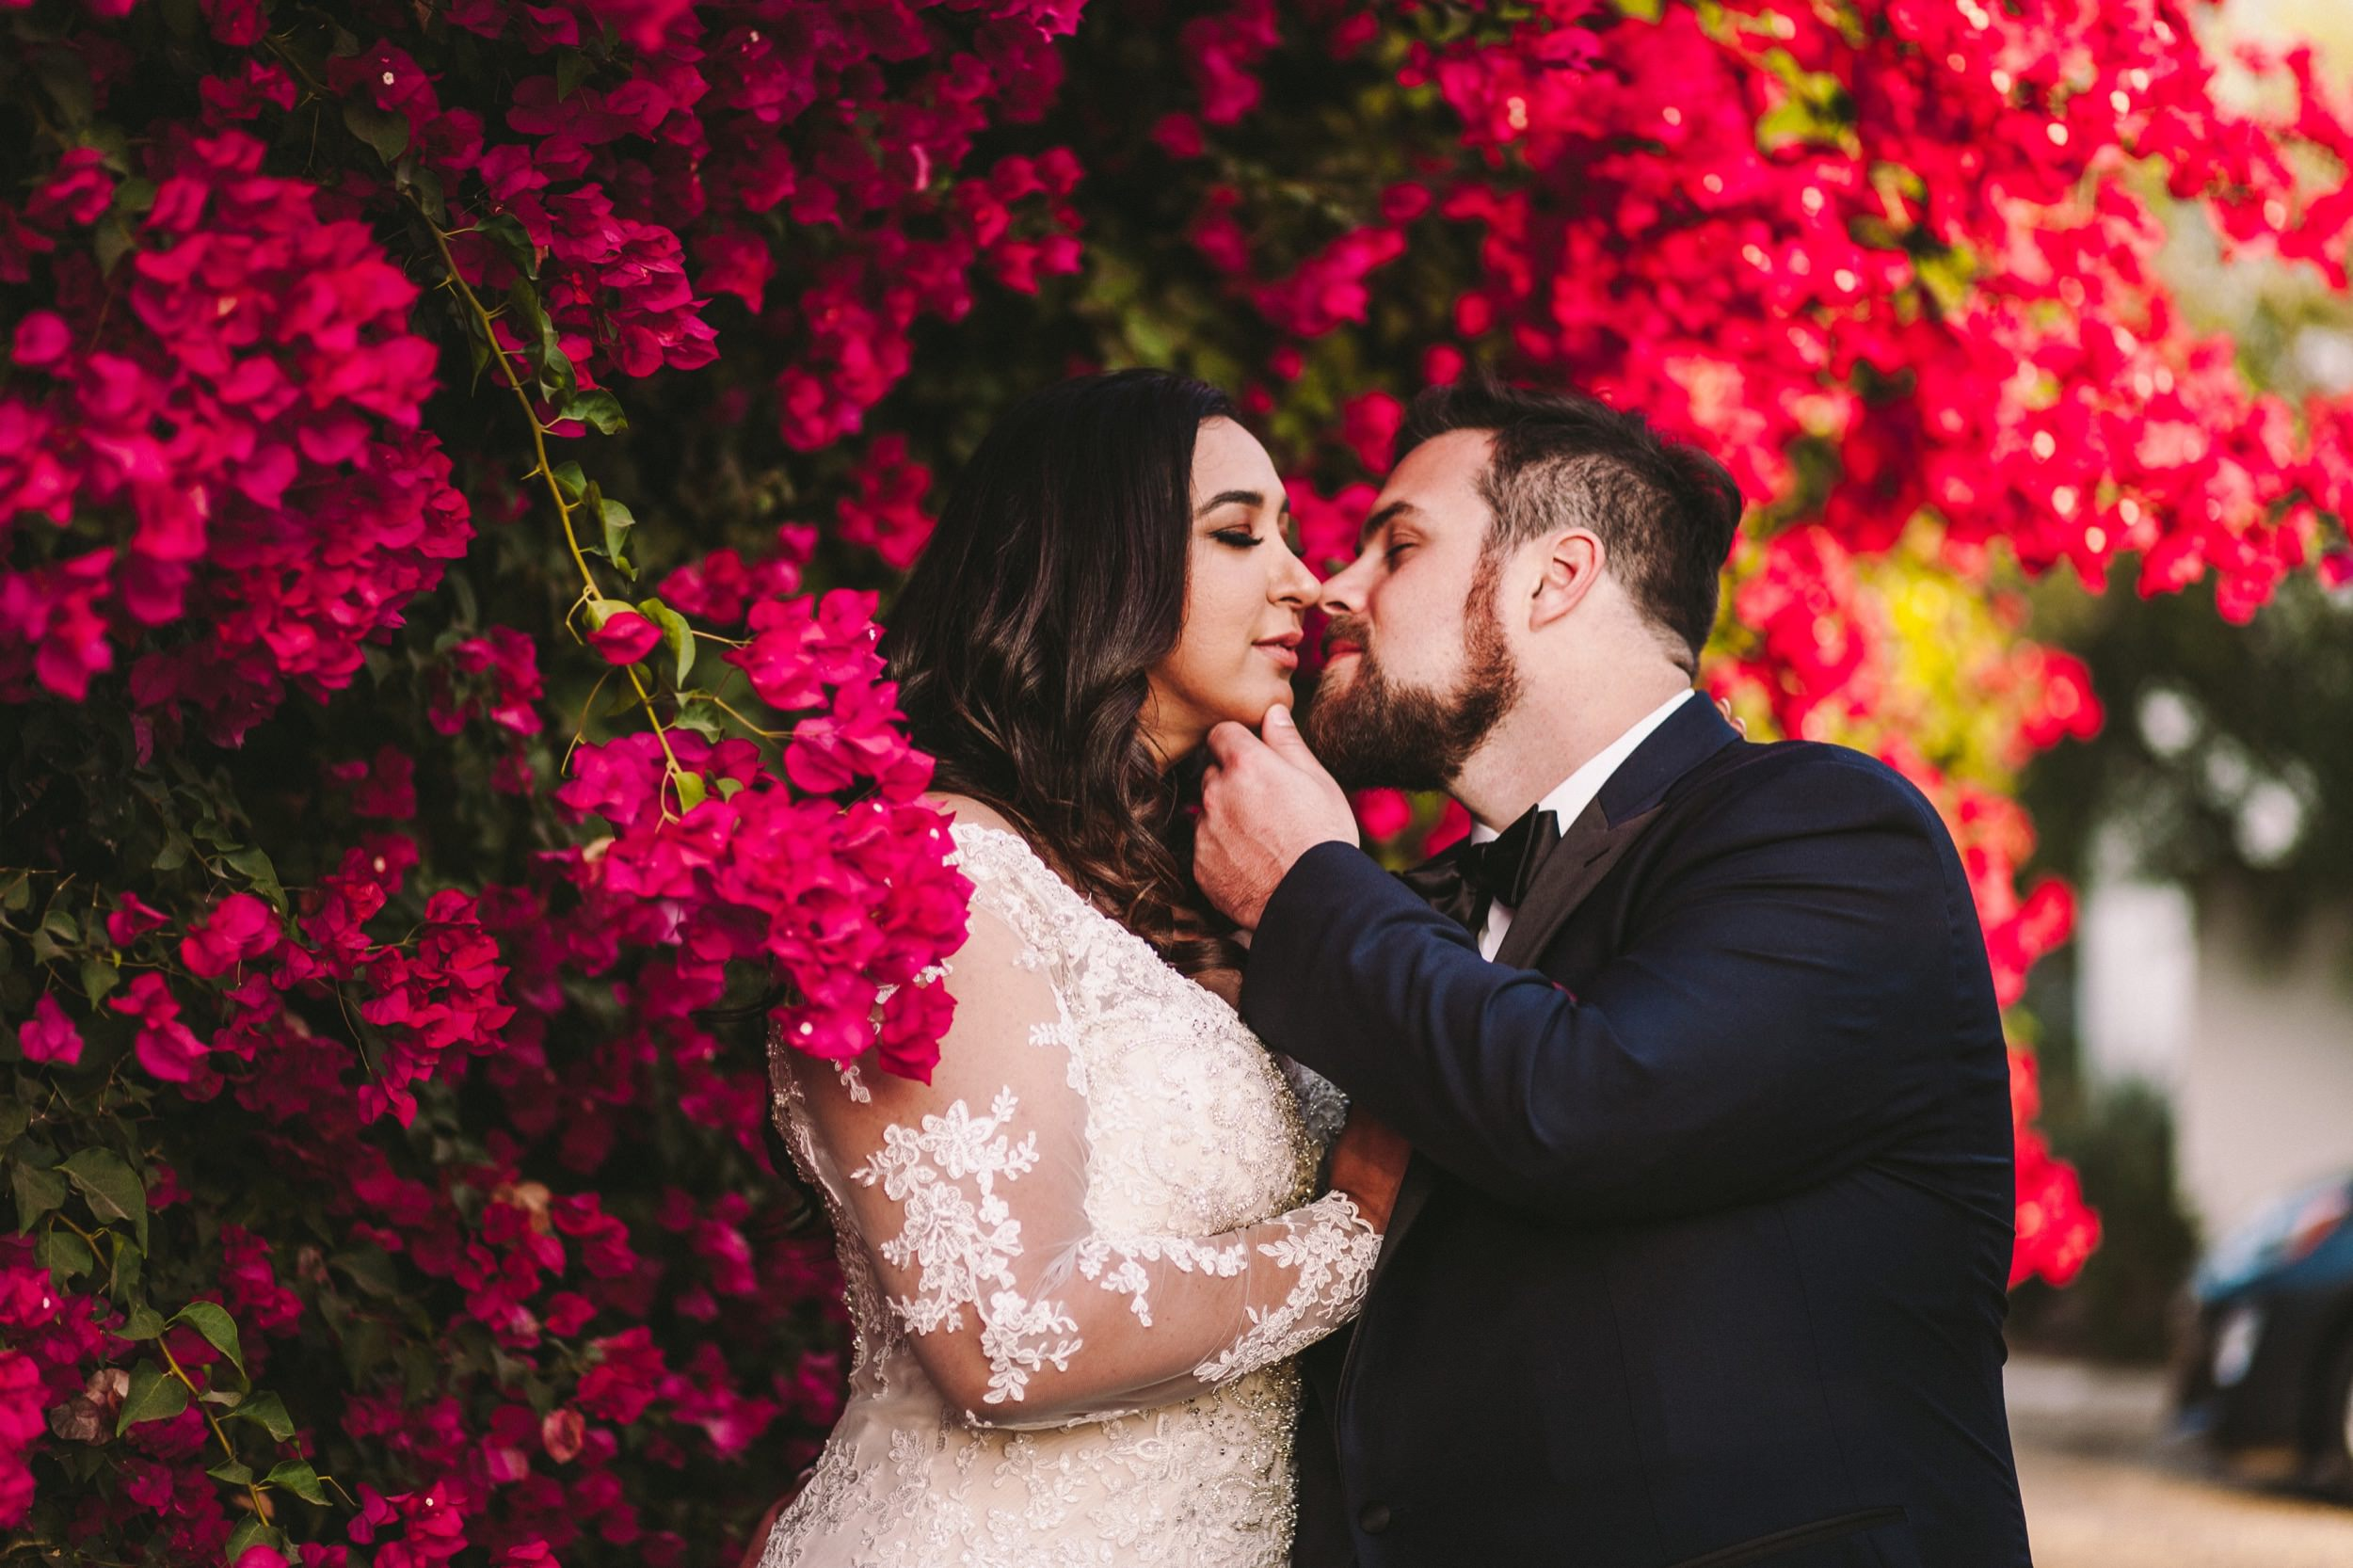 Persian American Wedding with Bougainvillea Backdrop